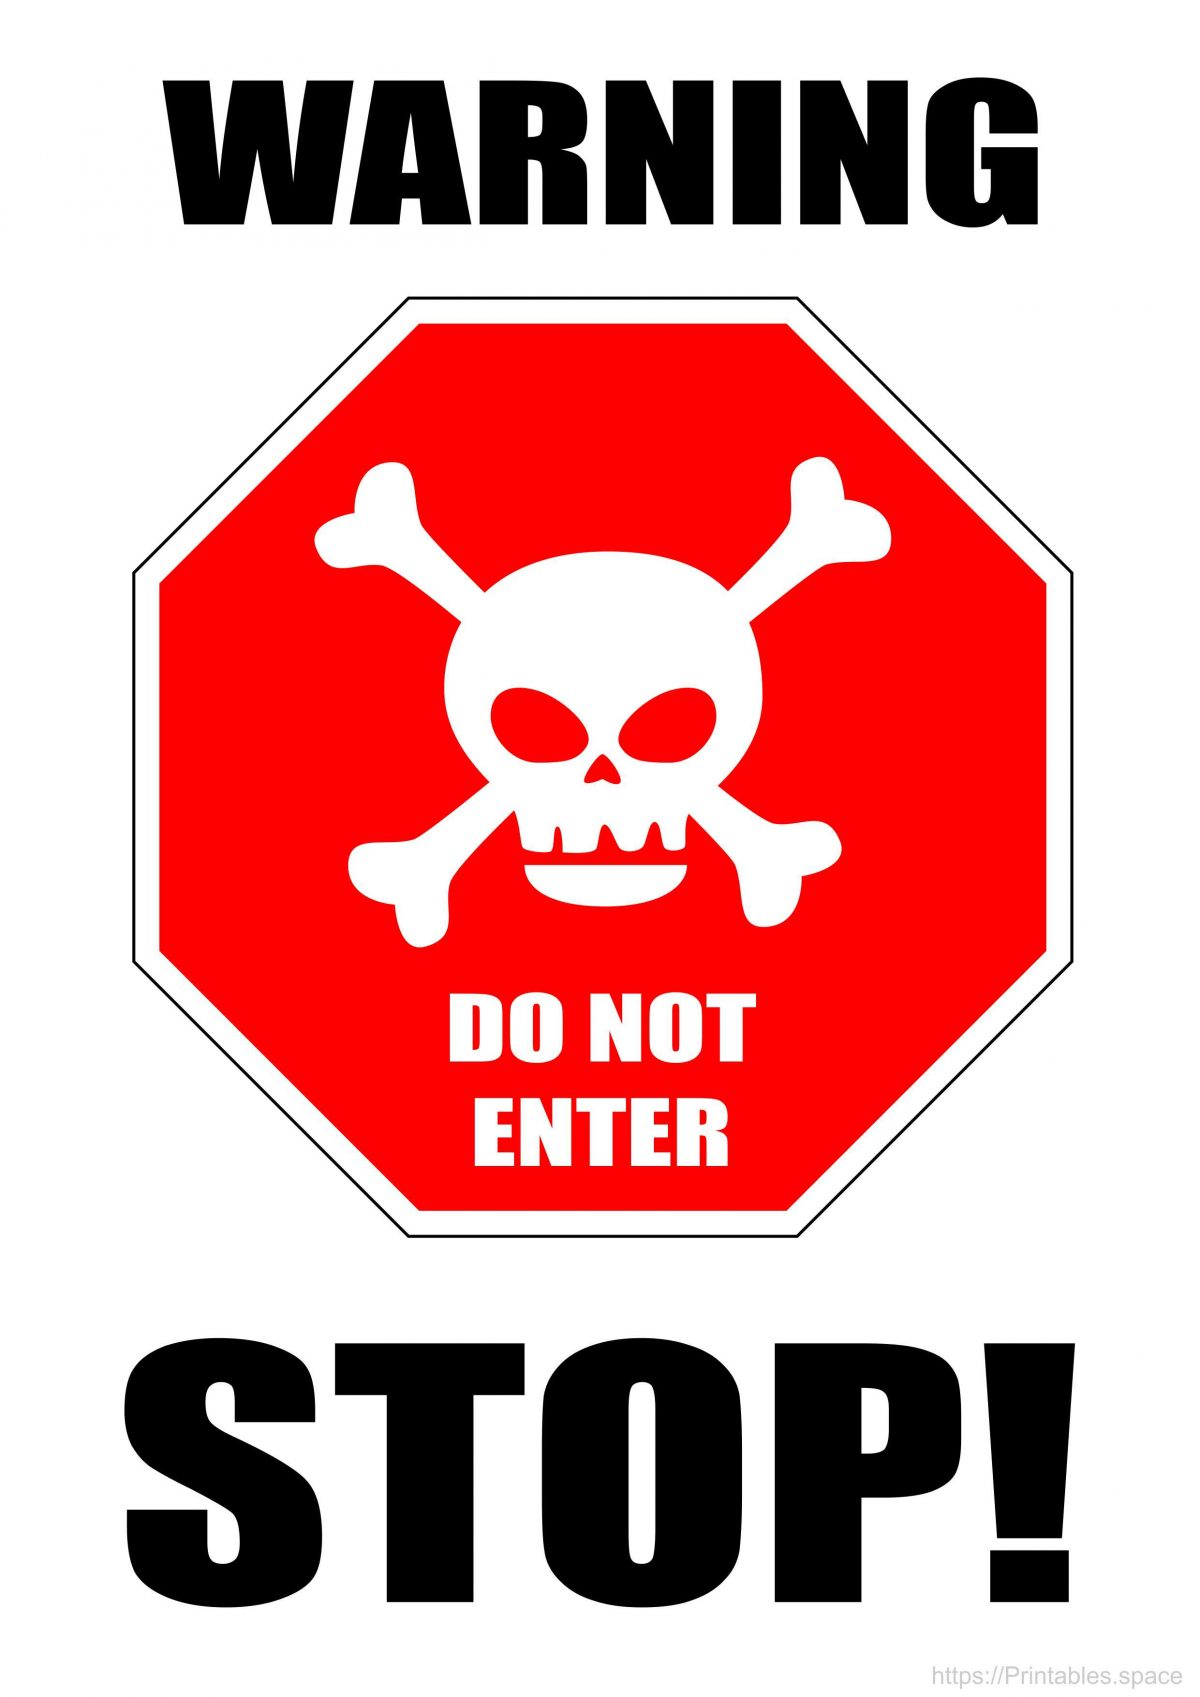 Warning! Stop - Free Printable Sign